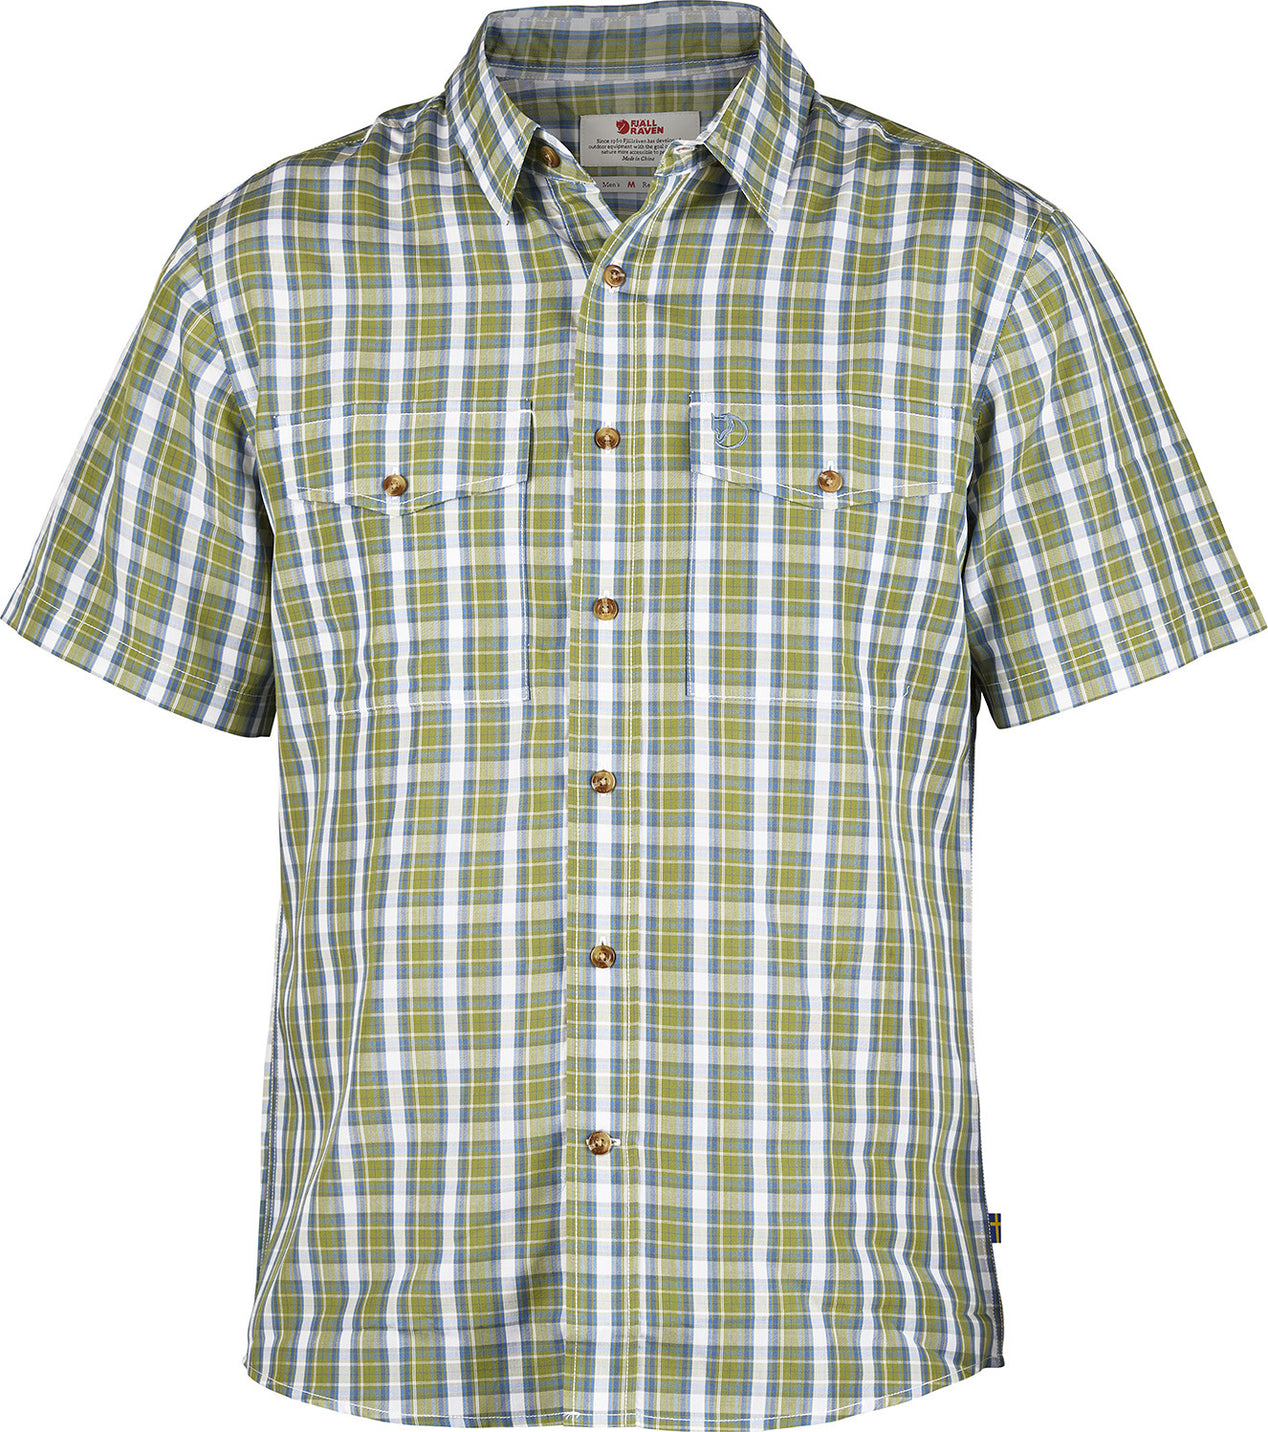 0b0190af9c2 Fjällräven Abisko Cool Shirt Ss - Men's | The Last Hunt